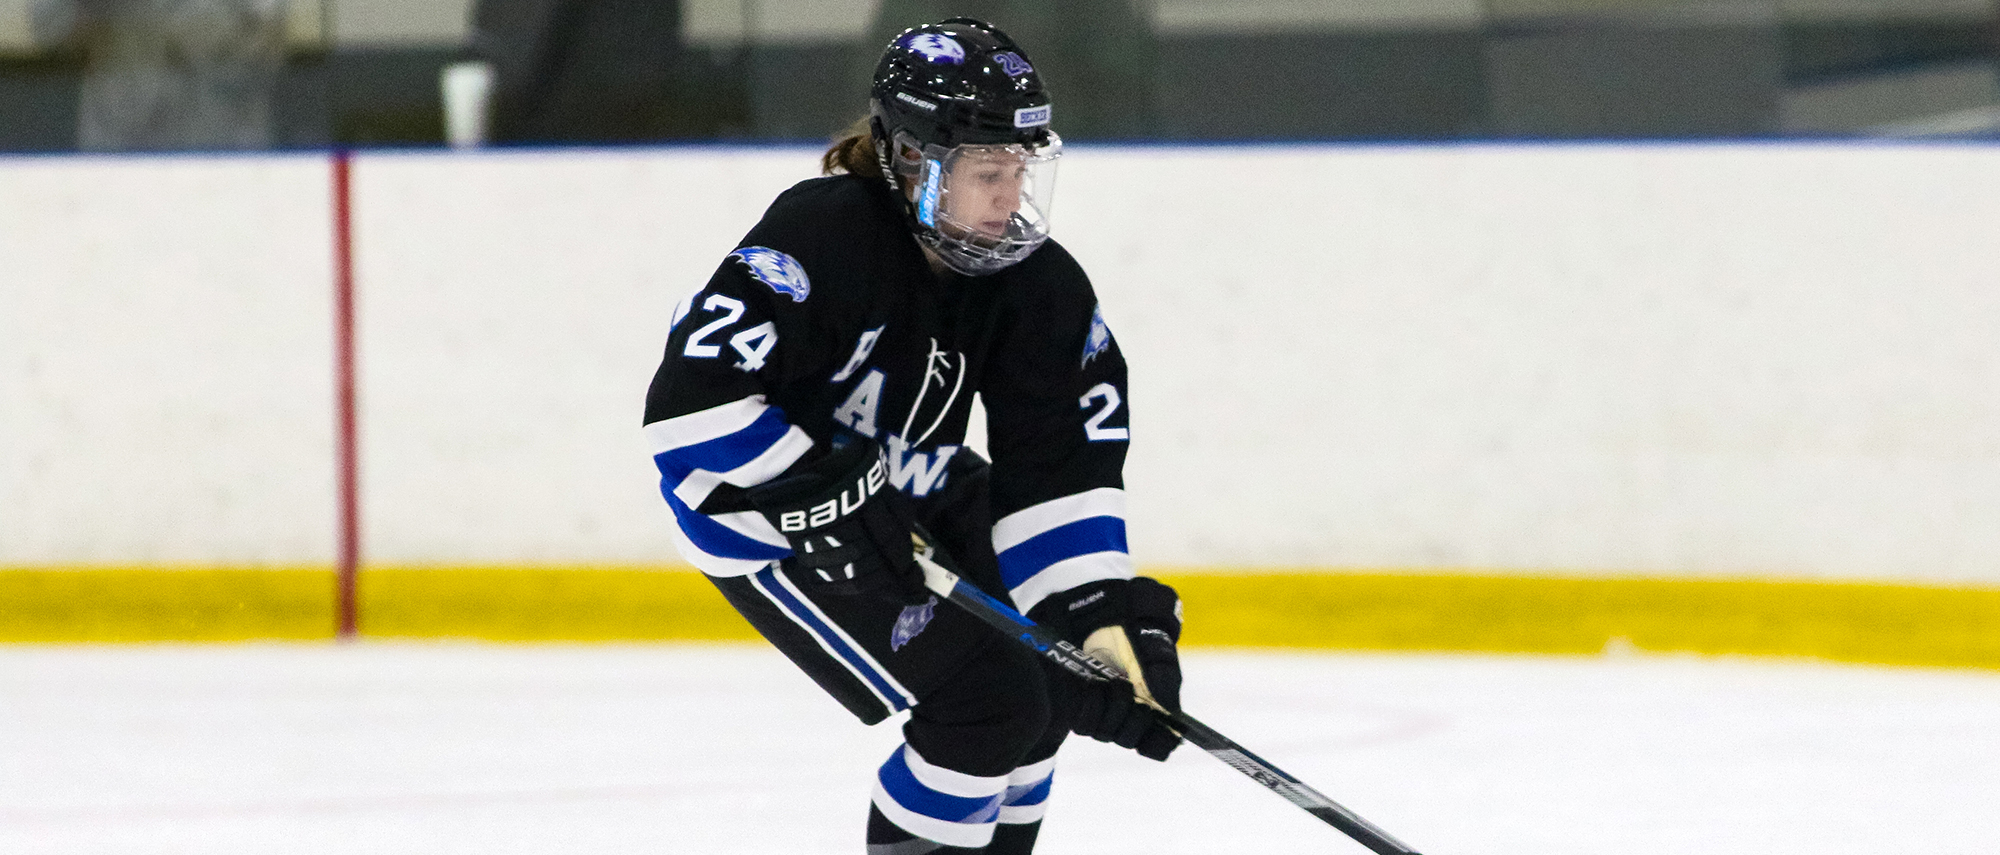 Olivia Dupree, women's ice hockey at Franklin Pierce